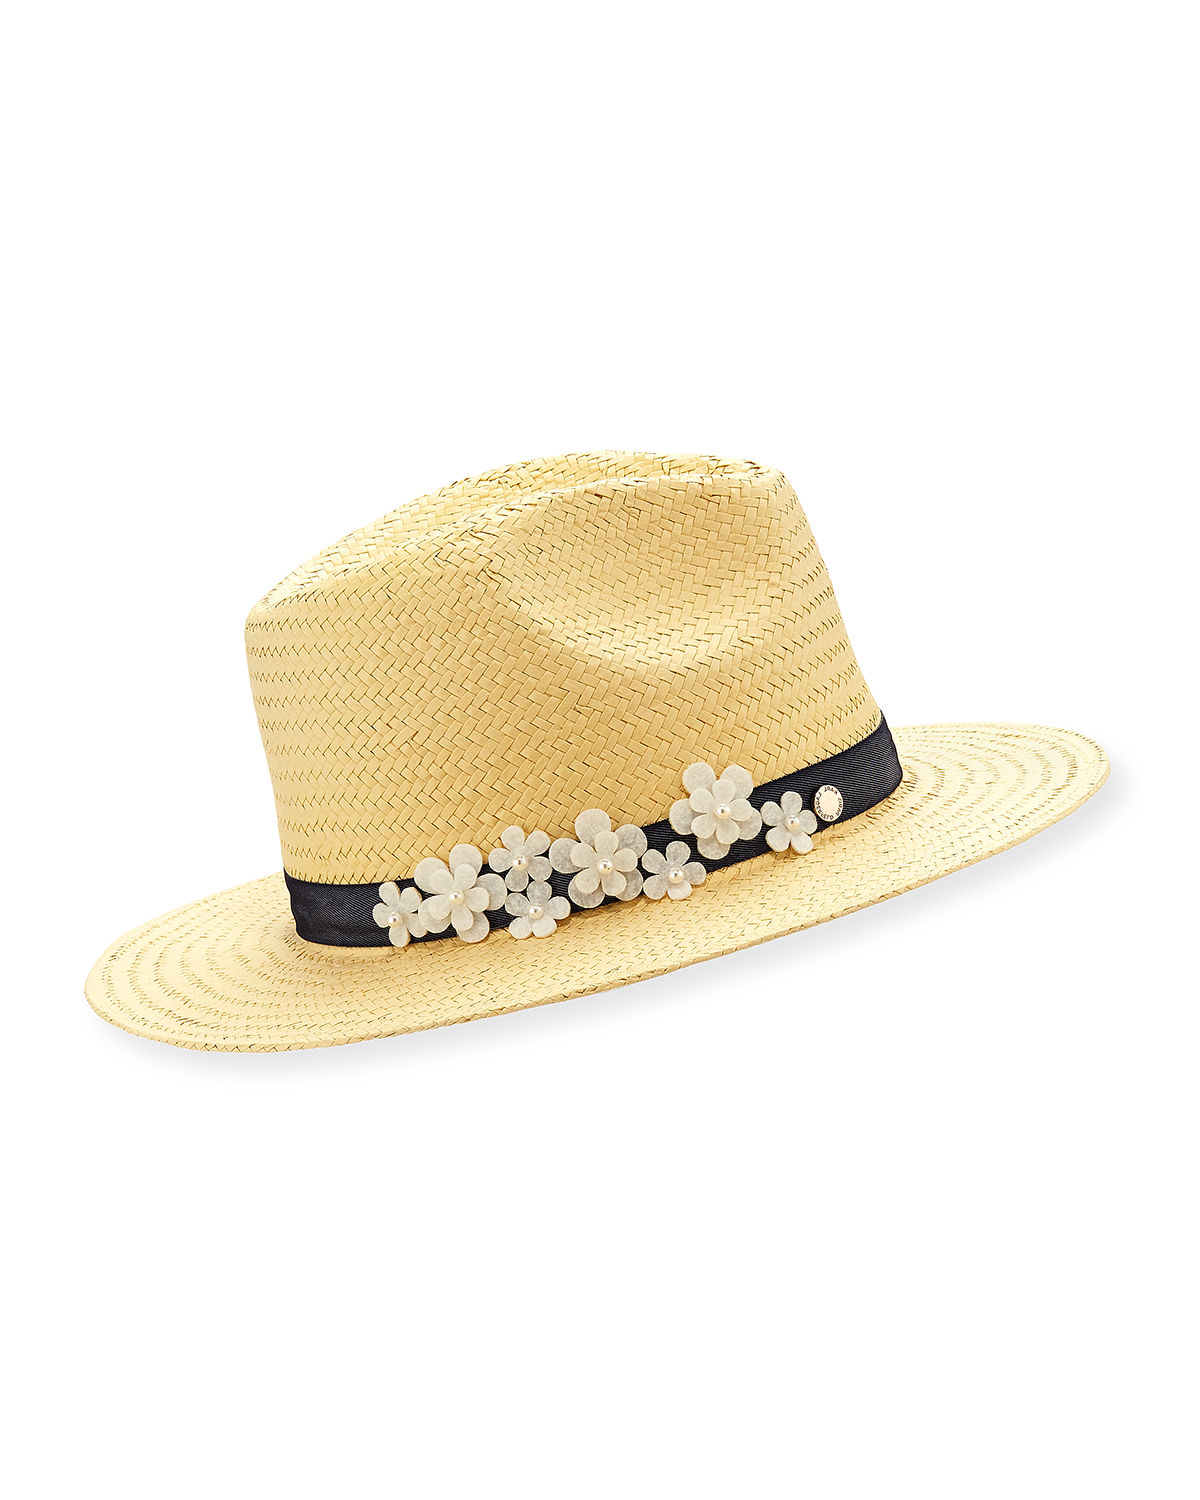 Floral Straw Panama Hat